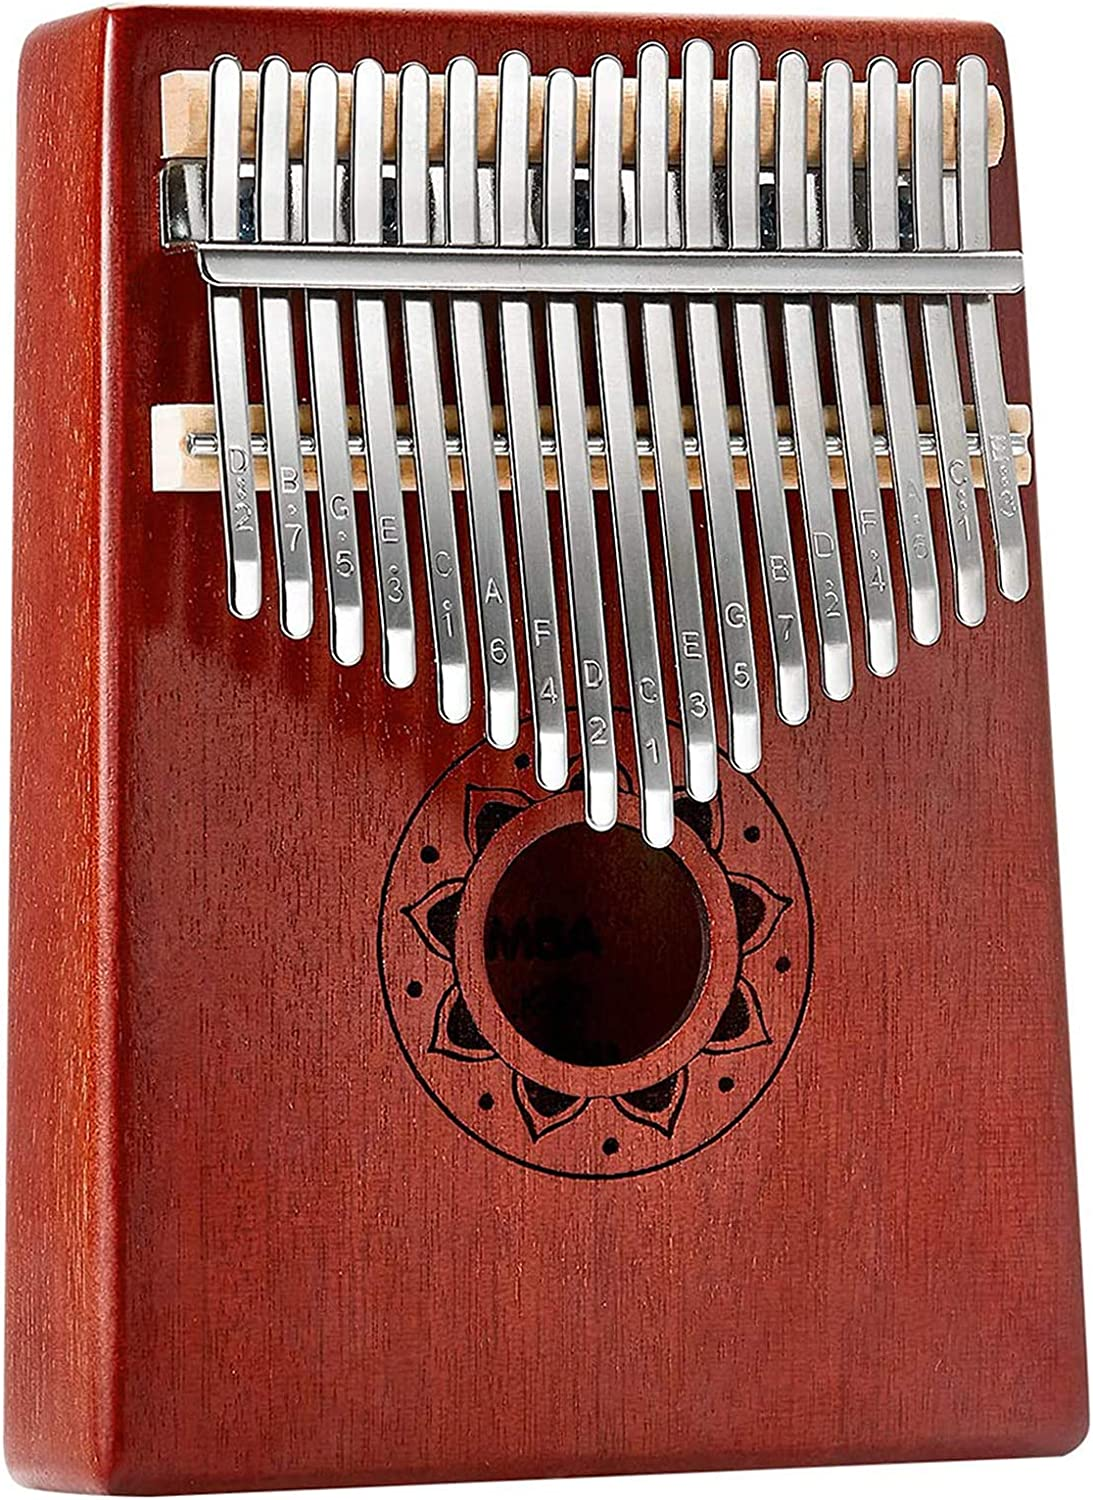 Kinbelle Kalimba 21 Keys Thumb Piano Upgraded version with Study Instruction and Tune Hammer Gift for Kids Adult Beginners Portable Solid African Wood Finger Piano